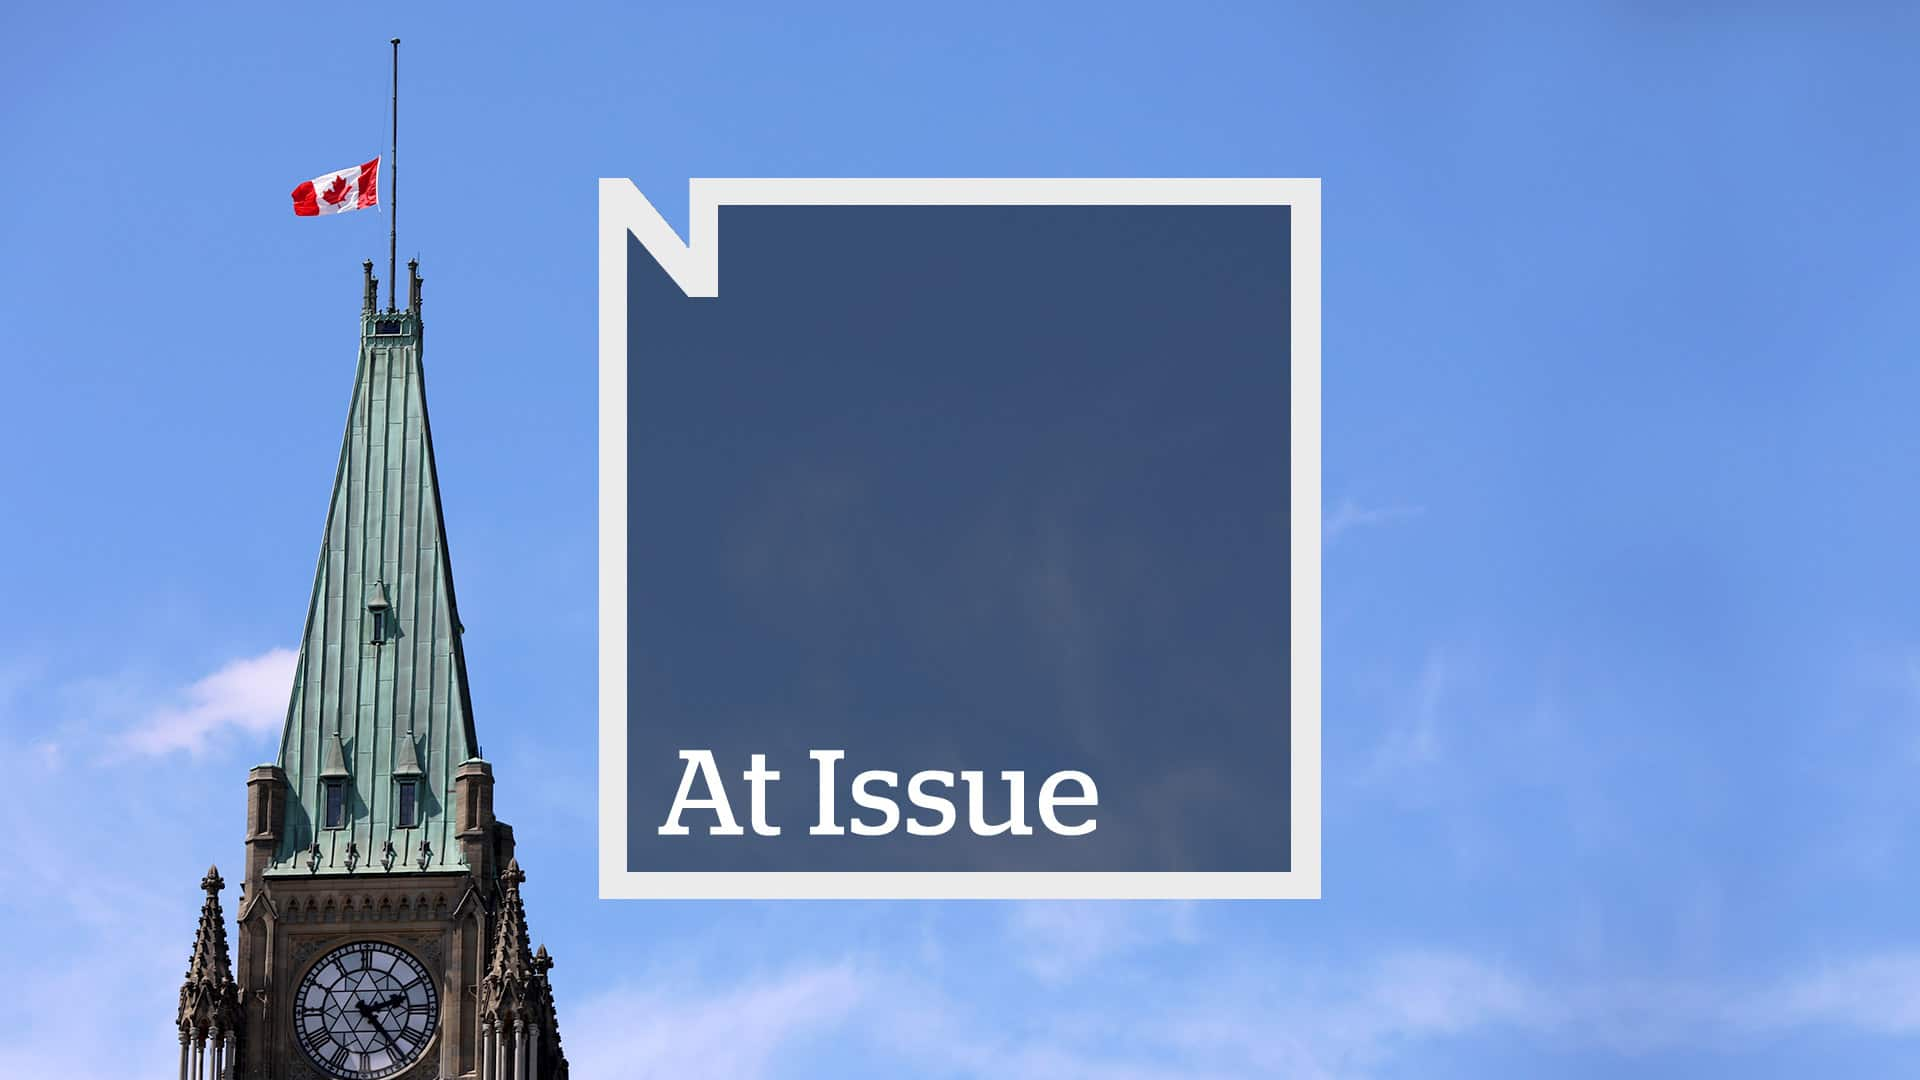 A political turning point for reconciliation in Canada?